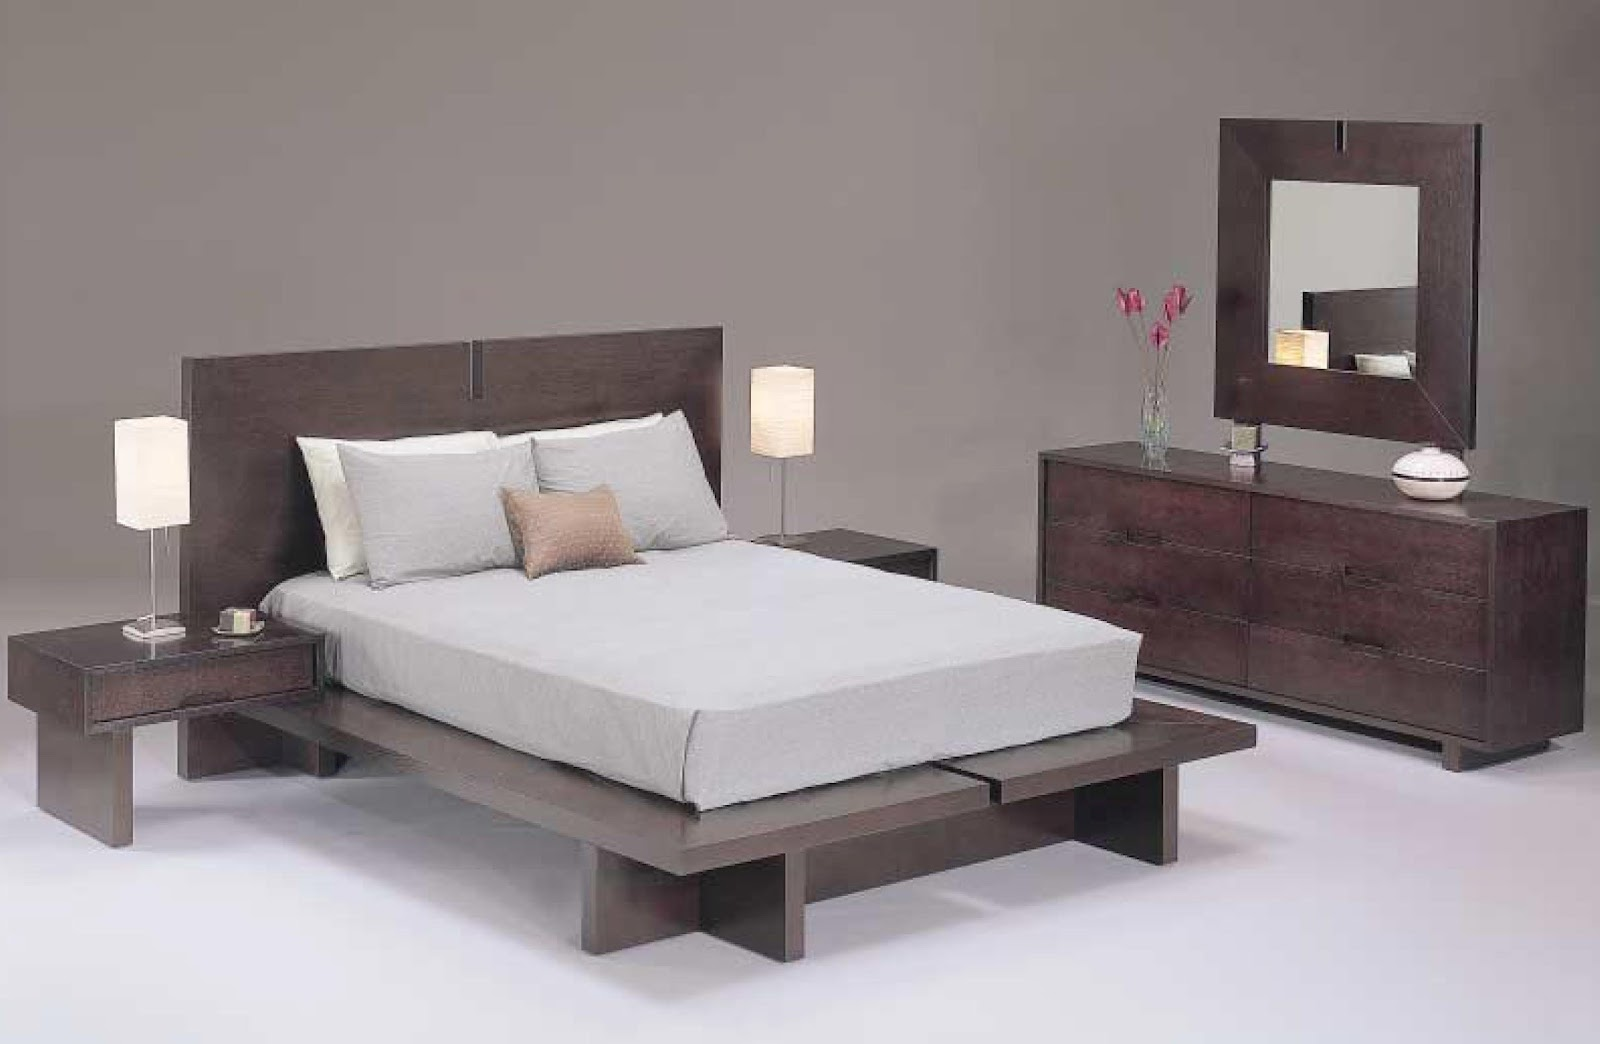 Http Cozybedroomideas Blogspot Com 2012 07 Most Wanted Bedroom Html